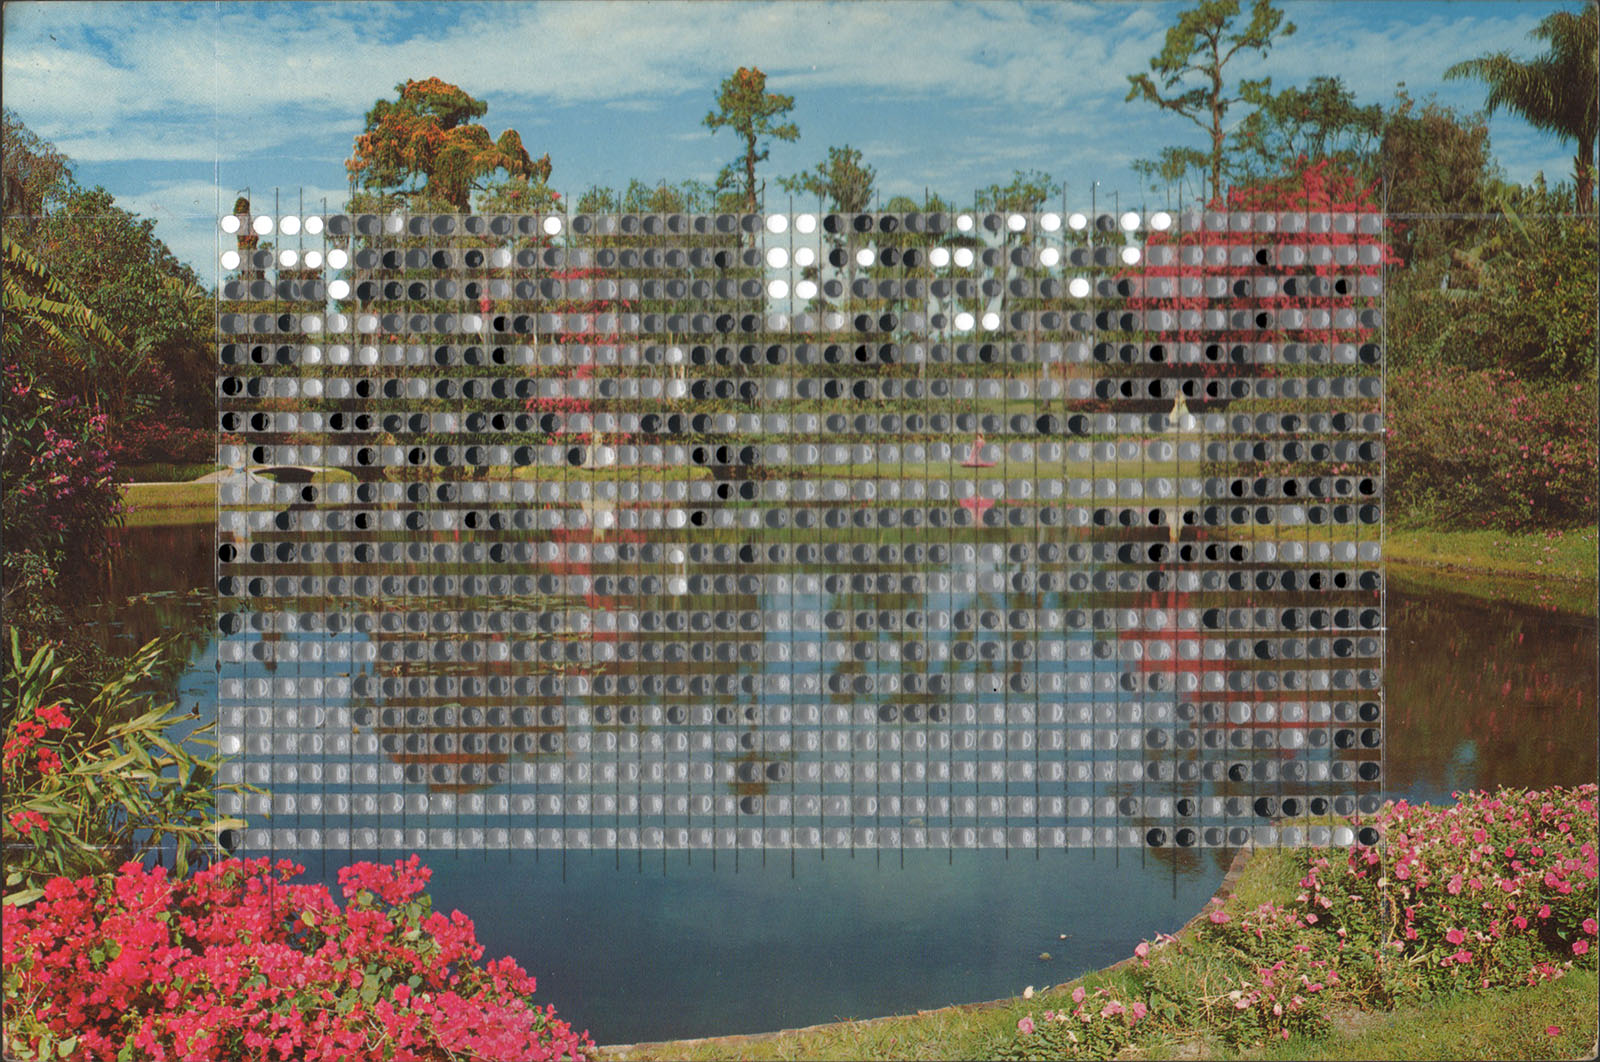 Borrowed Landscapes Study No. 152/FL, Winter Haven, Cypress Gardens Reflection Pool